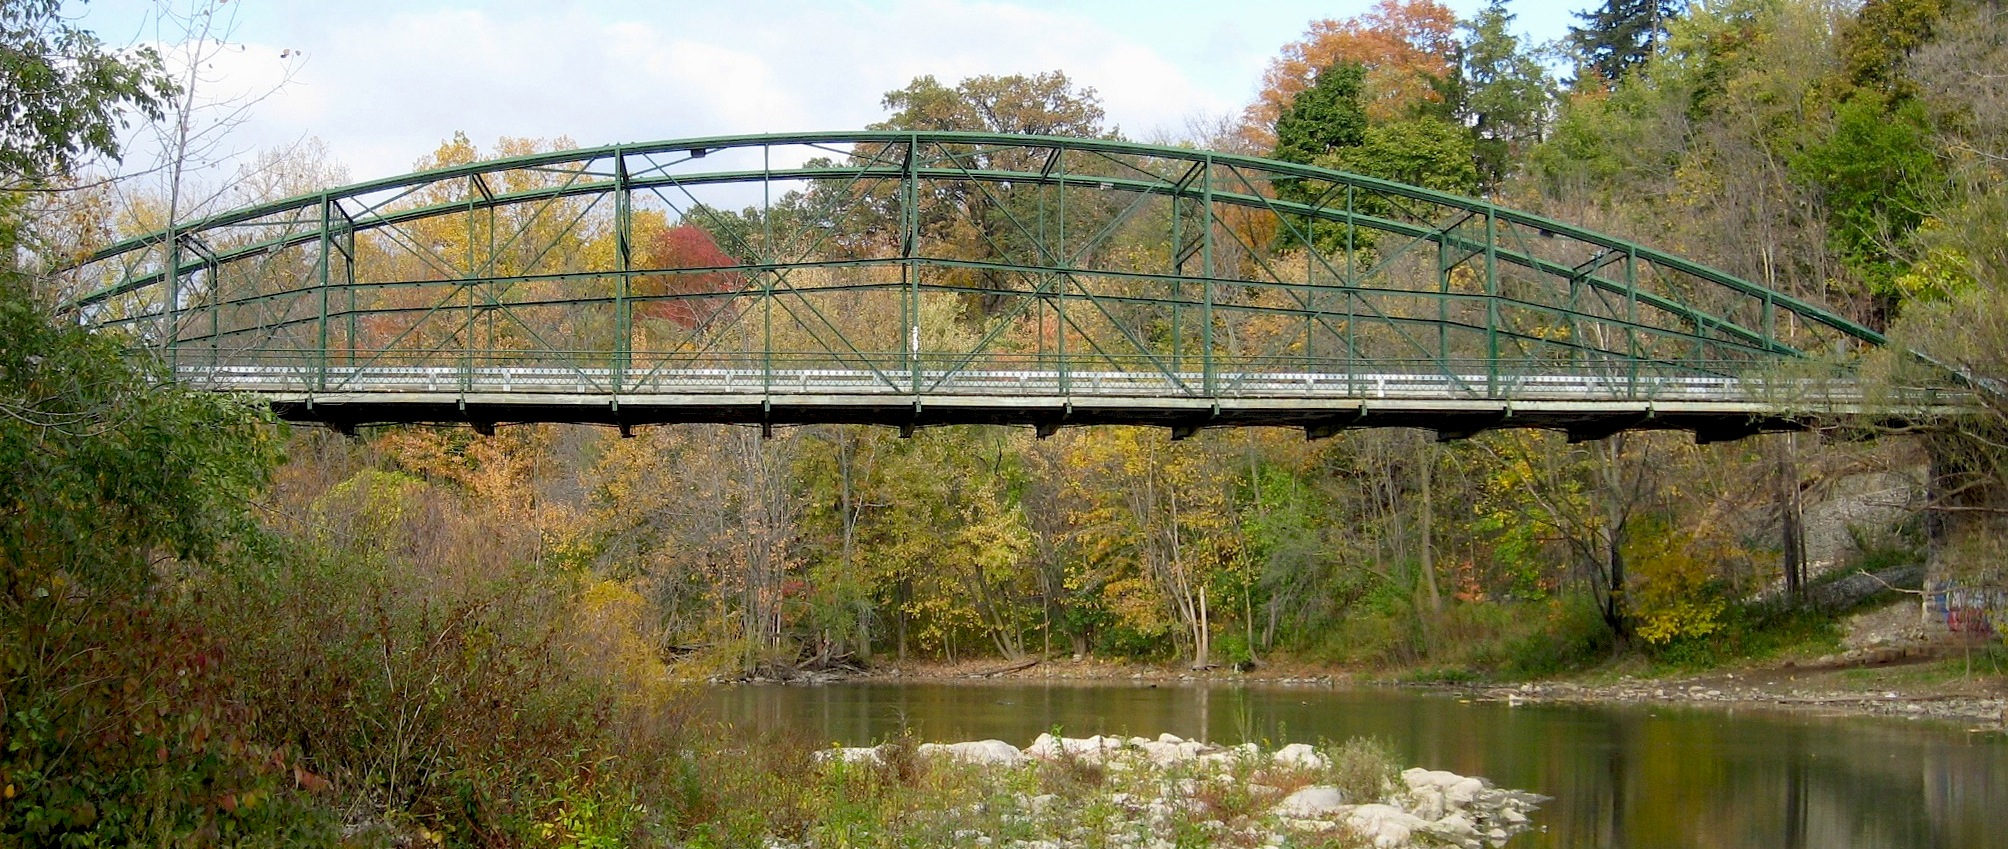 Truss Bridge Howe Diagram From Wikipedia By Alethe At English Cc Sa 30 The Bowstring Arch Through Was Patented In 1841